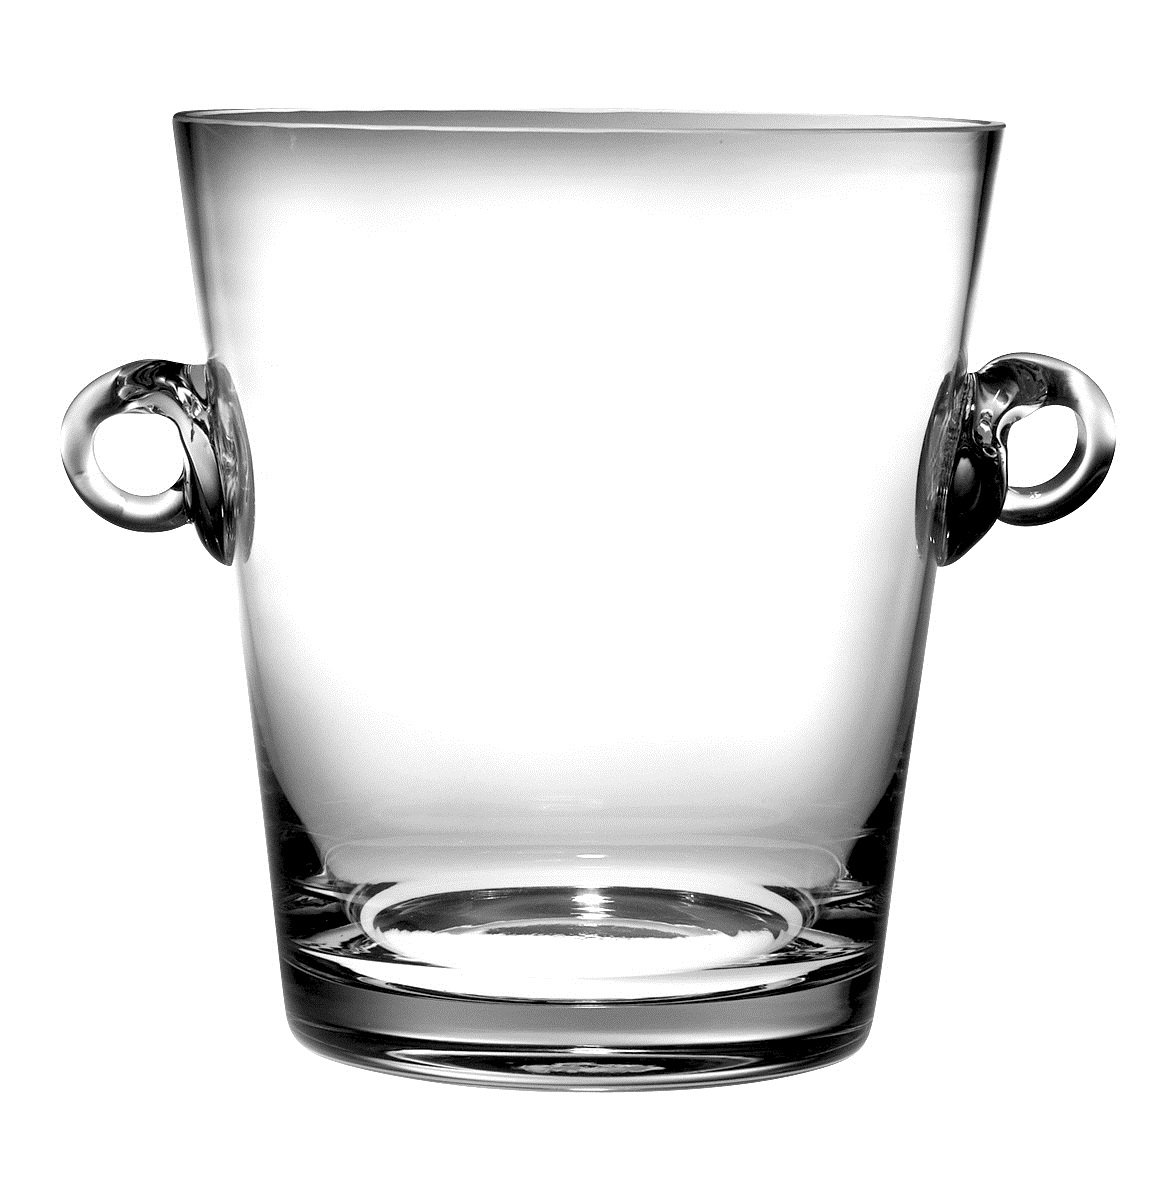 Barski -Glass- Ice Bucket- Wine Cooler - 7.25H Glass - with 2 handles - Clear - Made in Europe